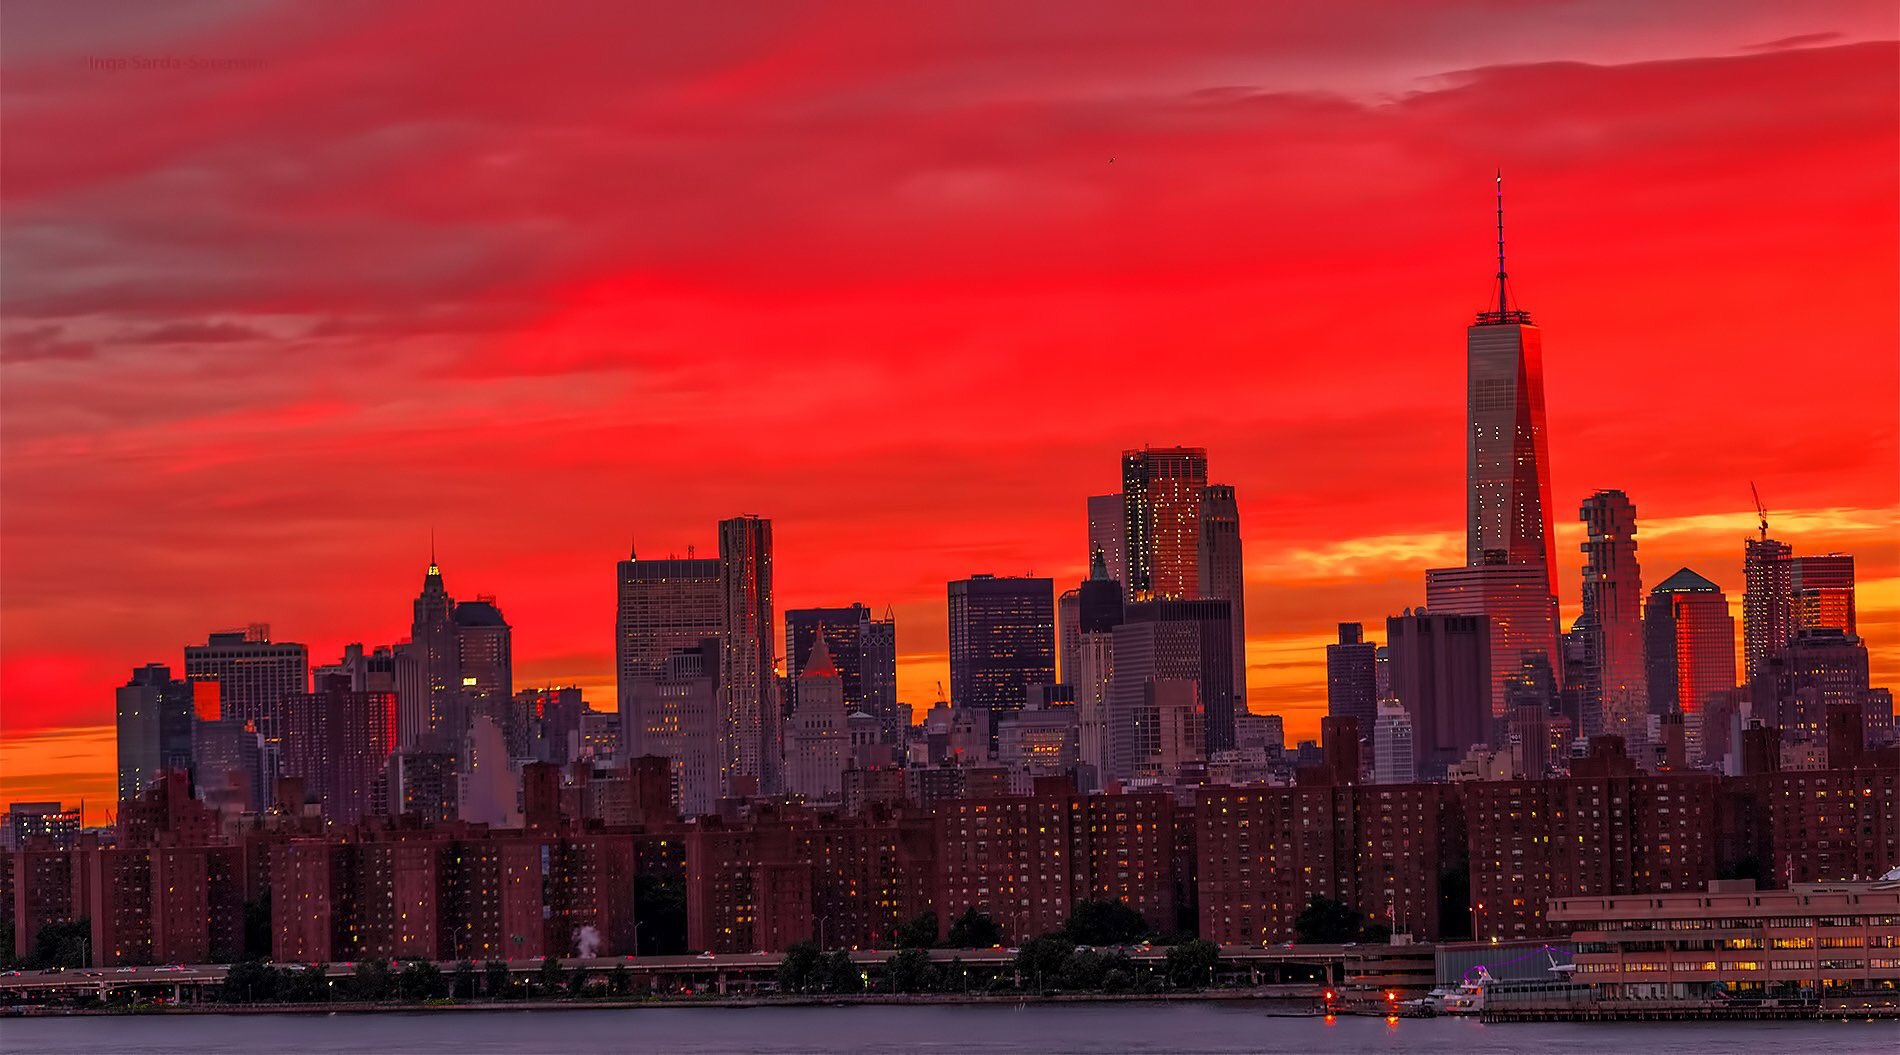 WOW! Sky on fire sunset seen tonight from New York City, NY. Photo credit: @isardasorensen #Sunset #NYC #NYwx https://t.co/yheq1vnrLz